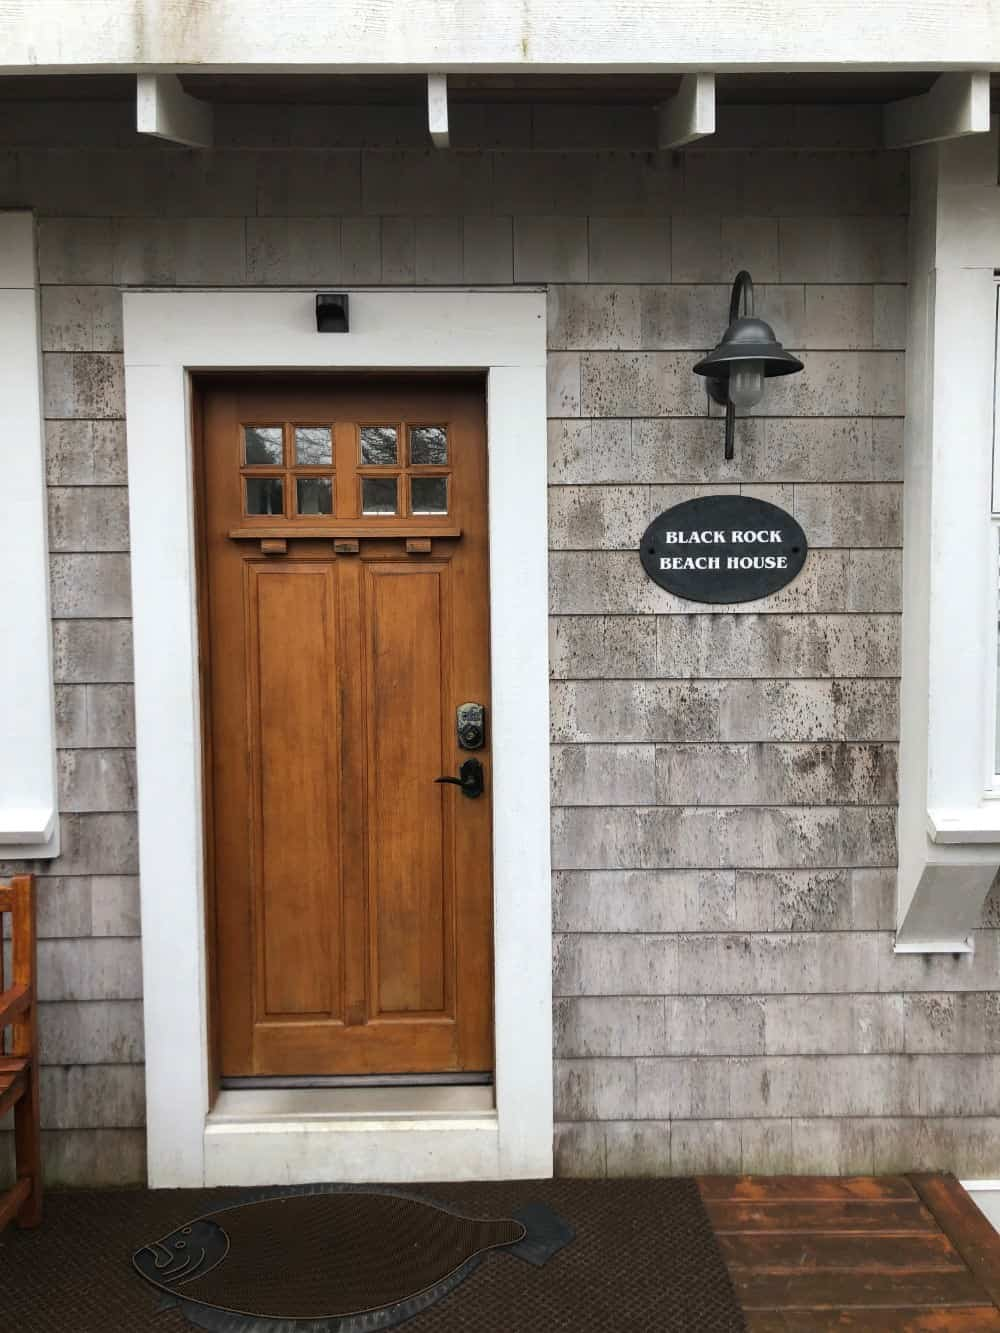 As you can see this house has an attractive wood shingle siding. This is a main entrance to the unit we stayed in.